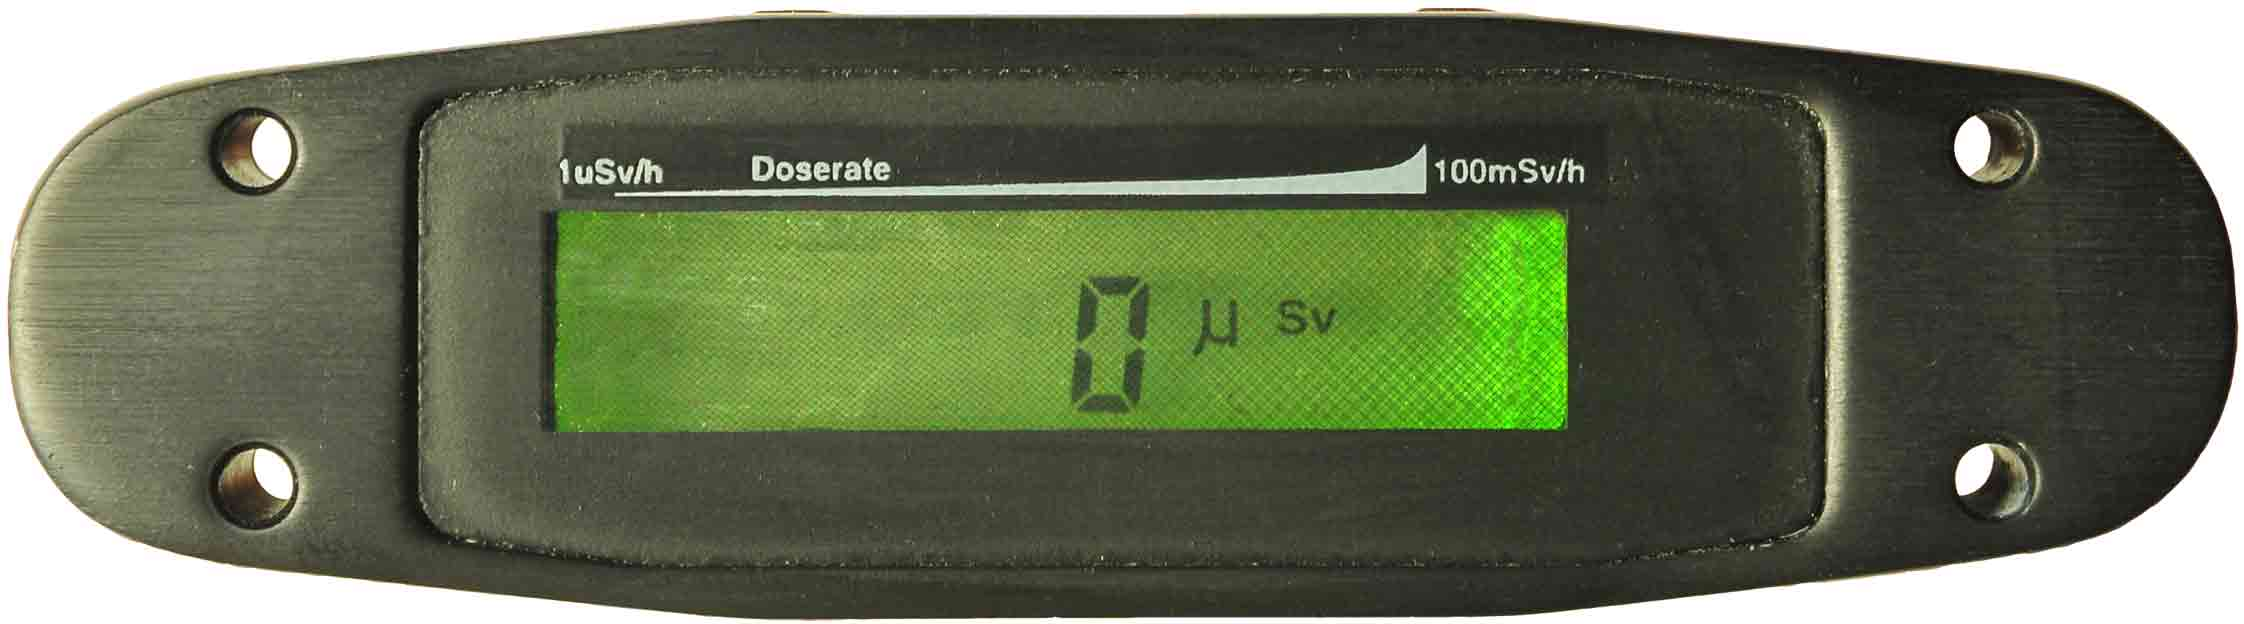 G111 Personal radiation dosimeter display end cap